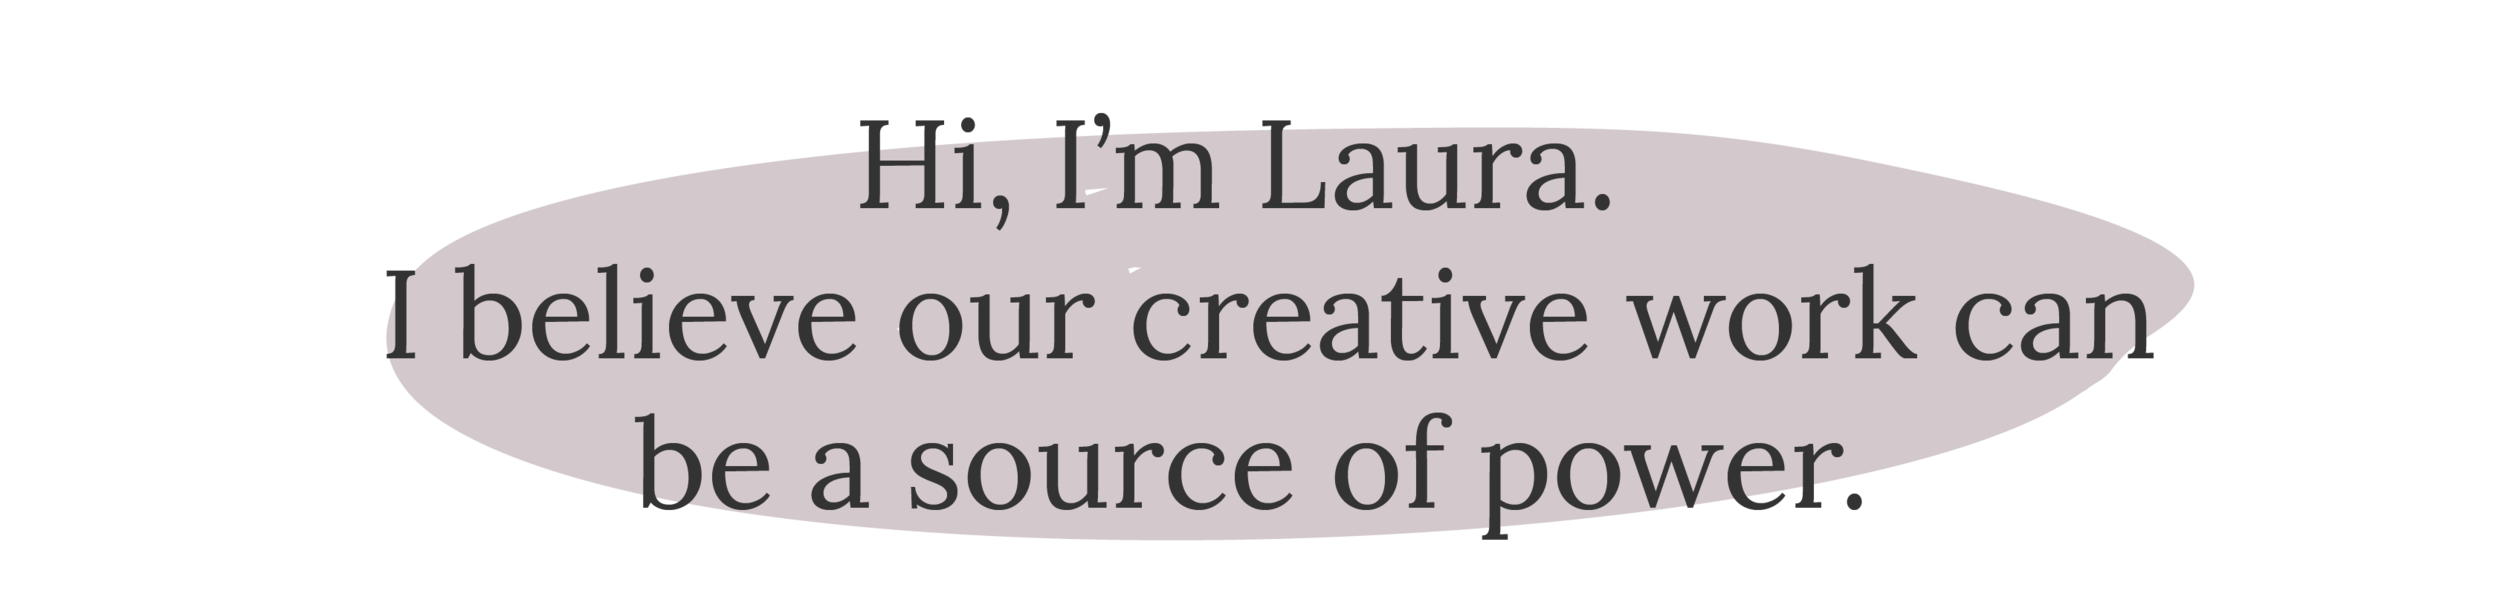 About Laura Text 2.png